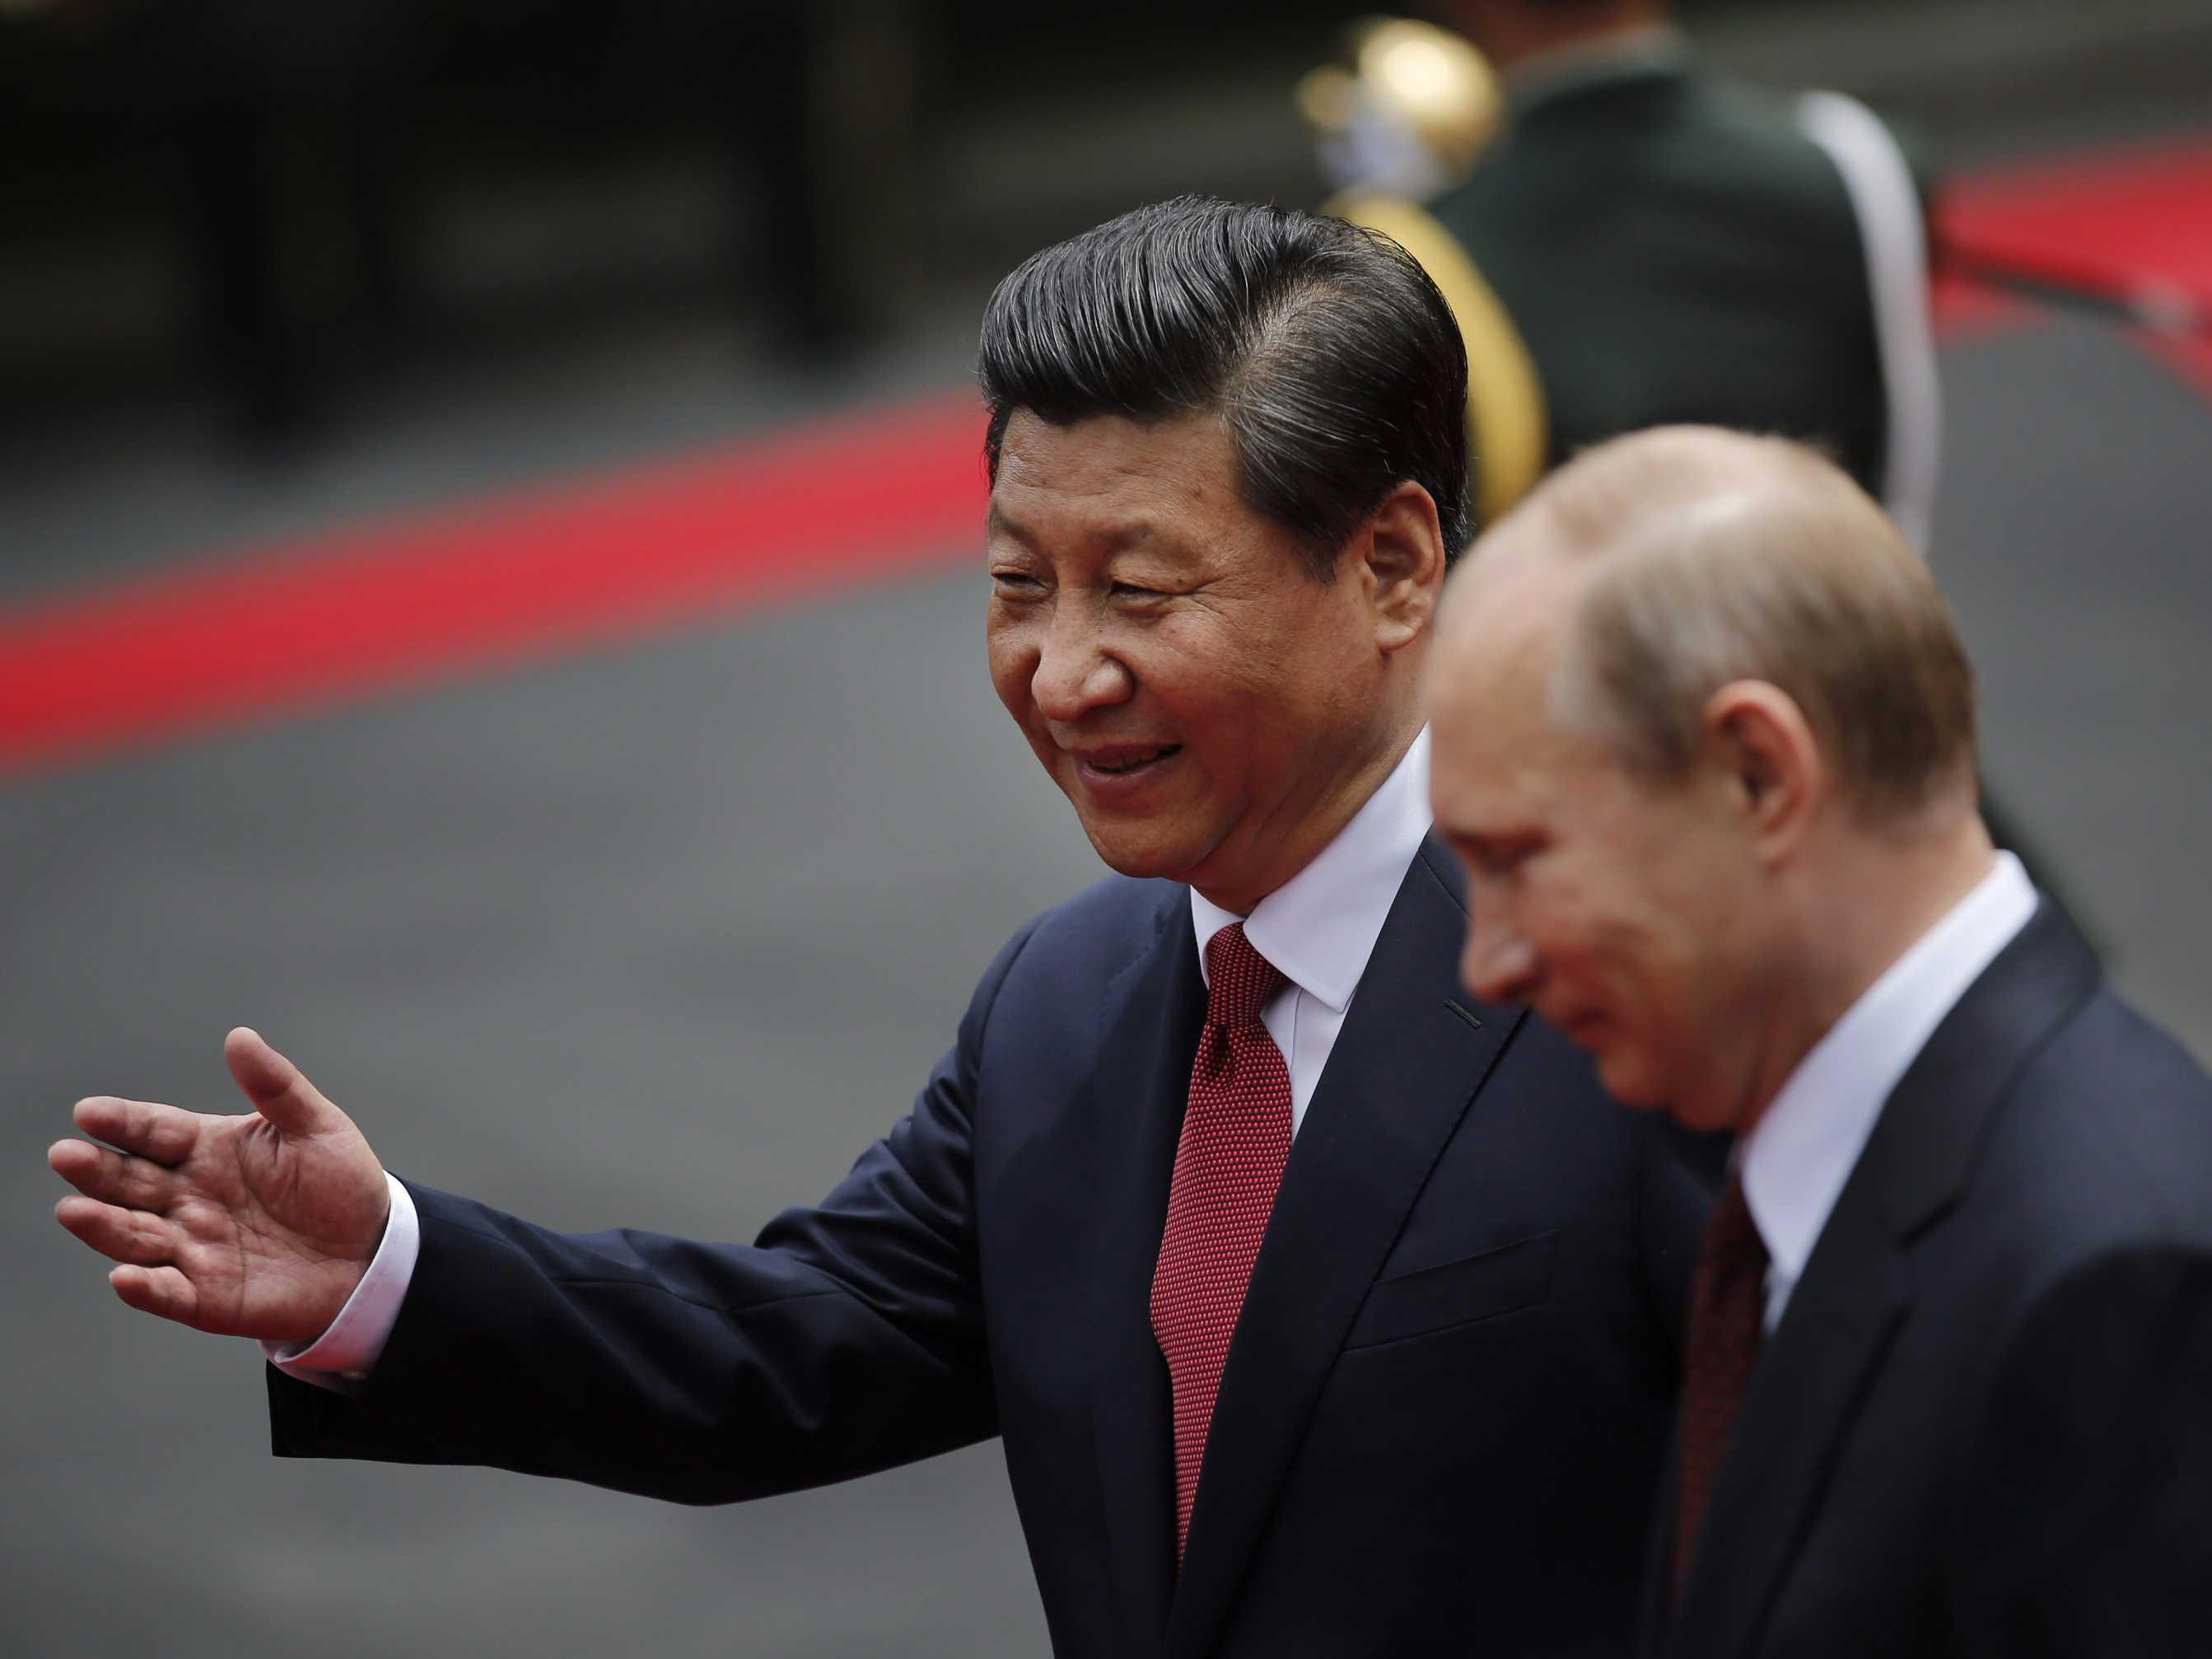 Chinese President Xi Jinping sounds a lot like Putin in his New Yorker profile